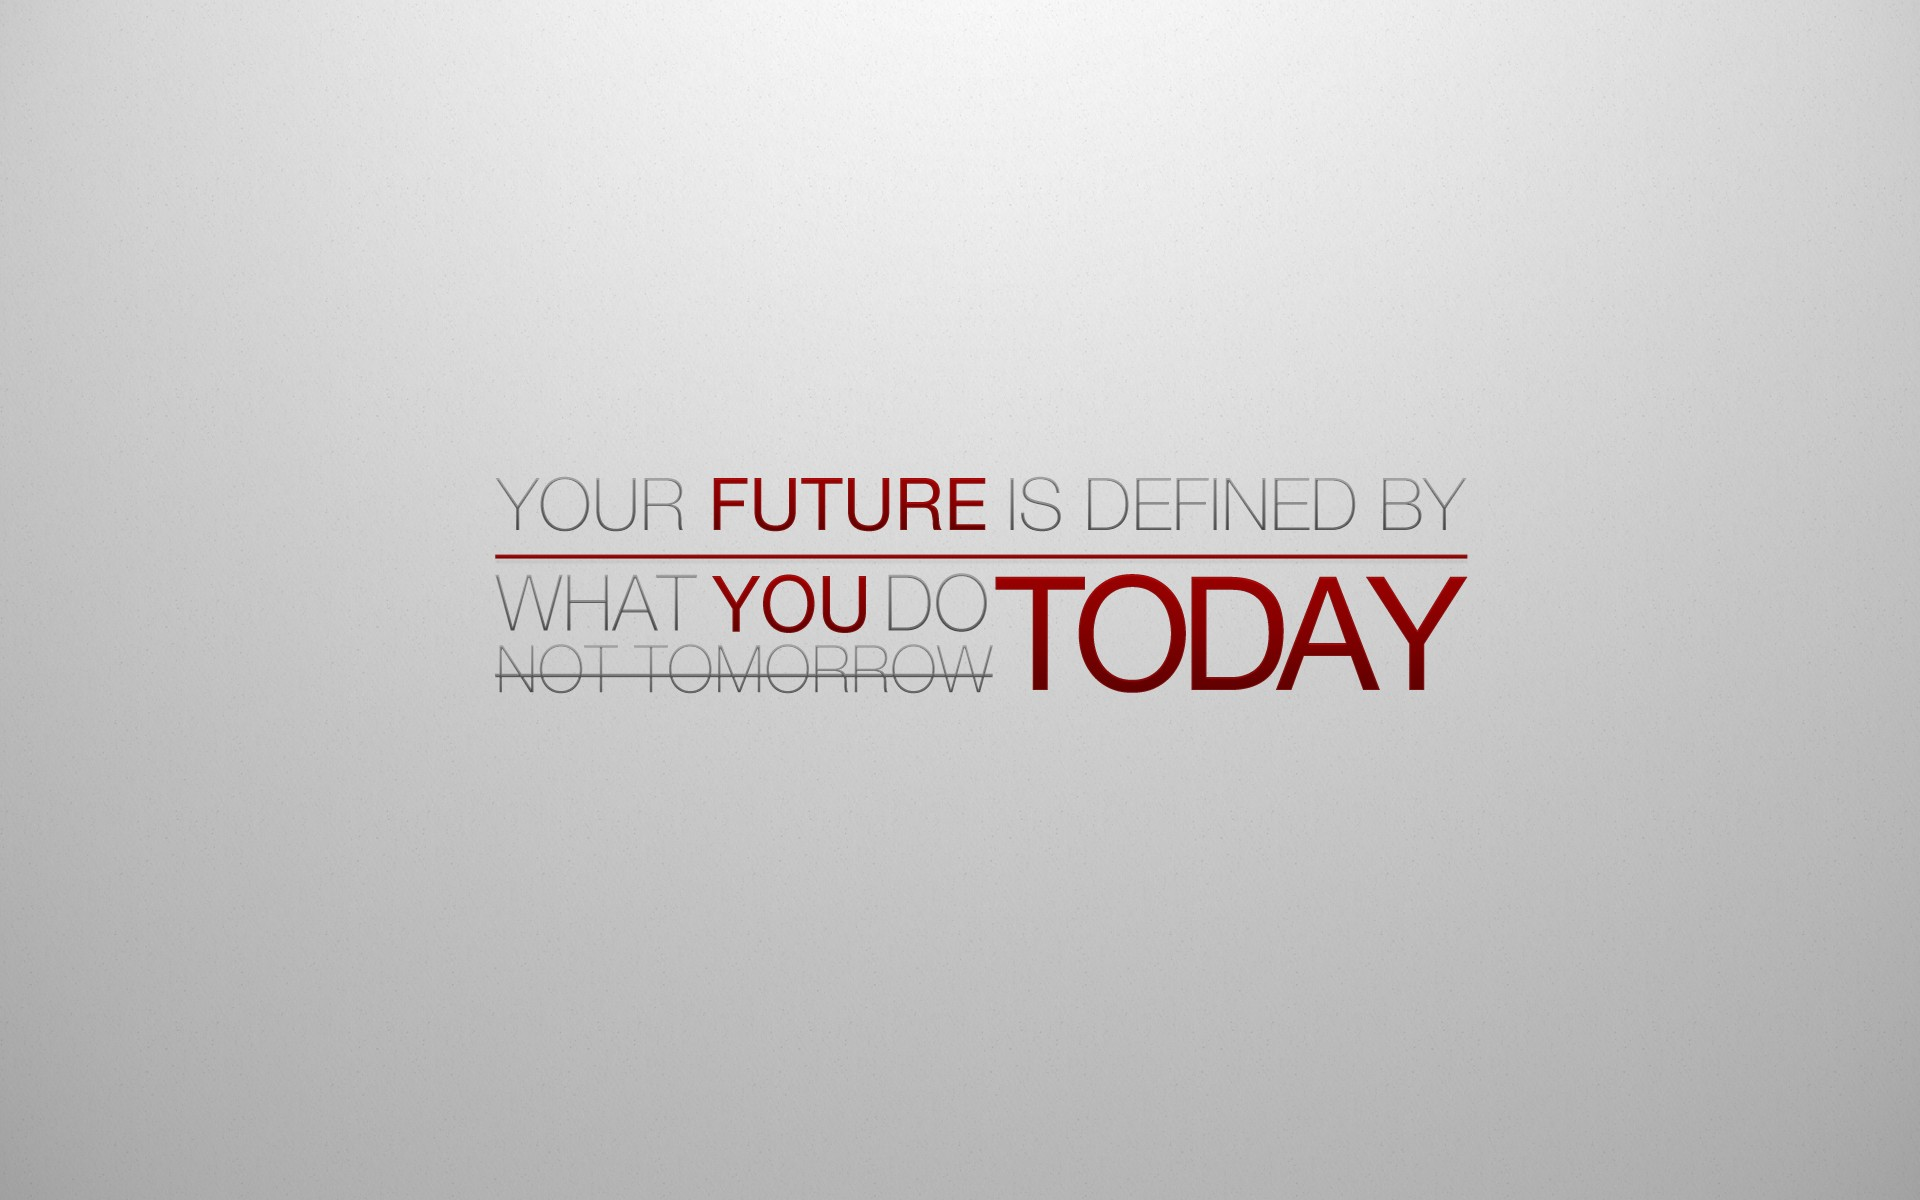 Future Quote Ipad Wallpaper Hd: Quote Full HD Wallpaper And Background Image